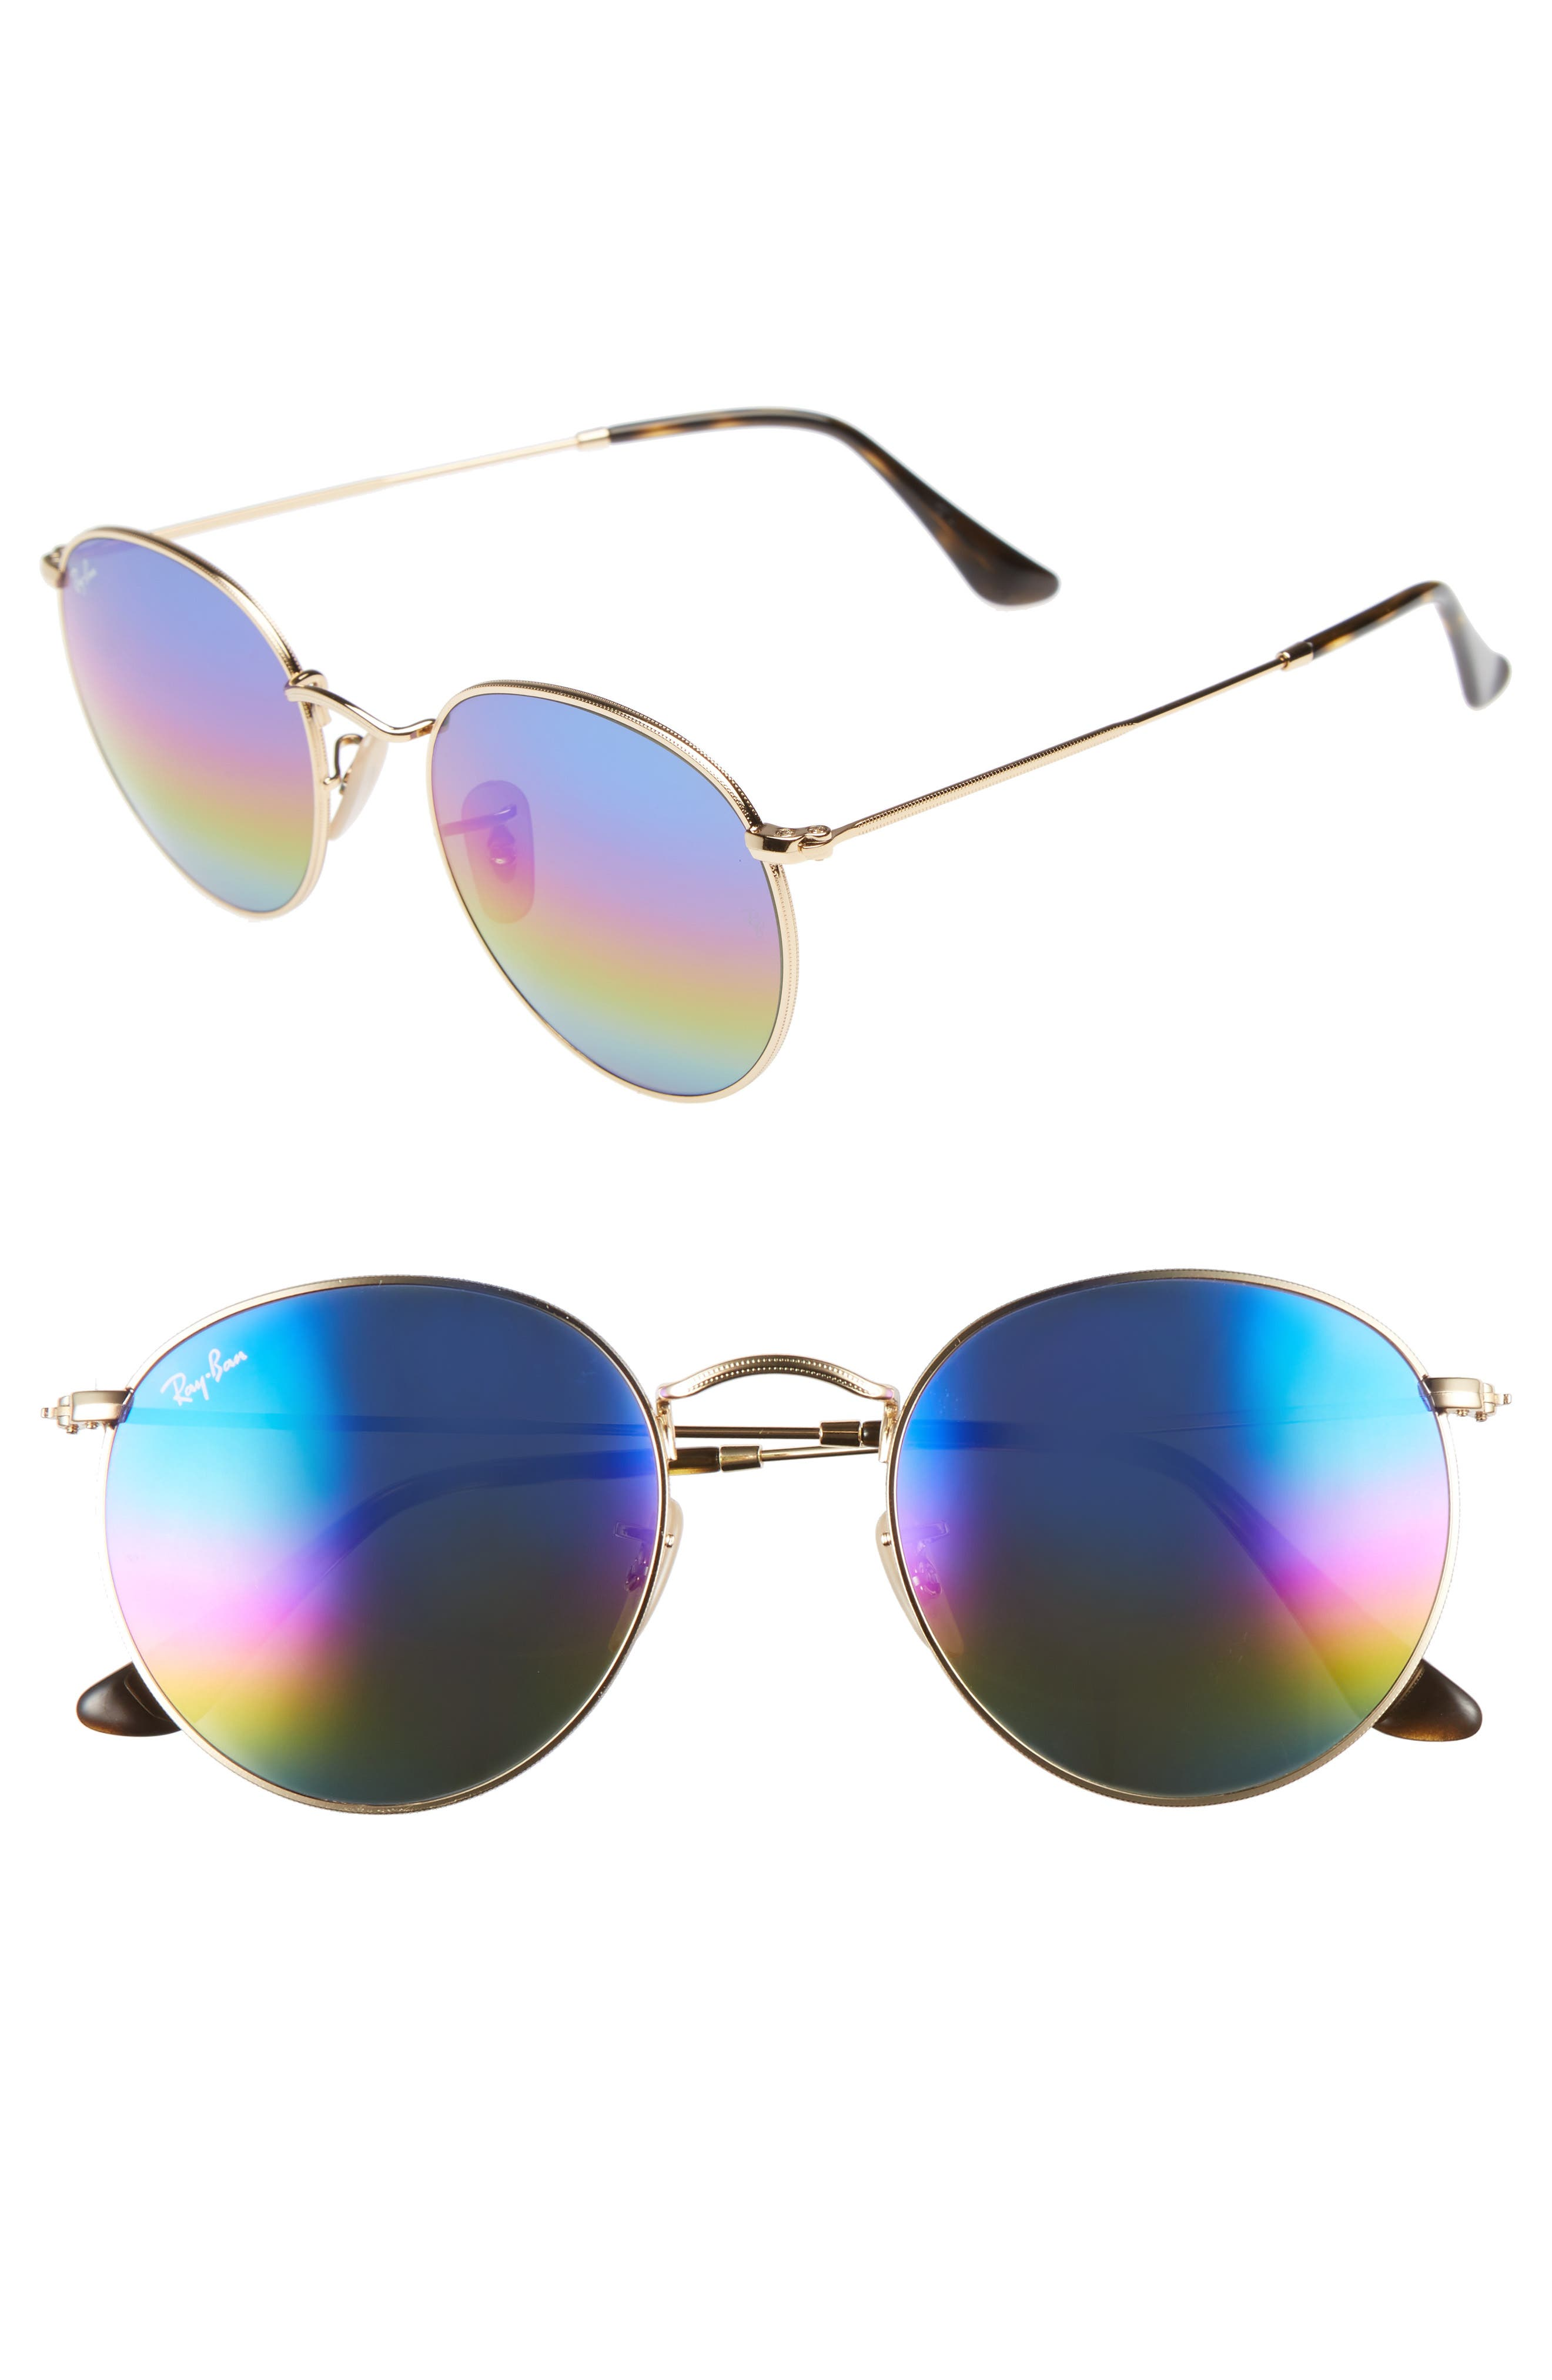 53mm Round Sunglasses,                             Main thumbnail 1, color,                             400